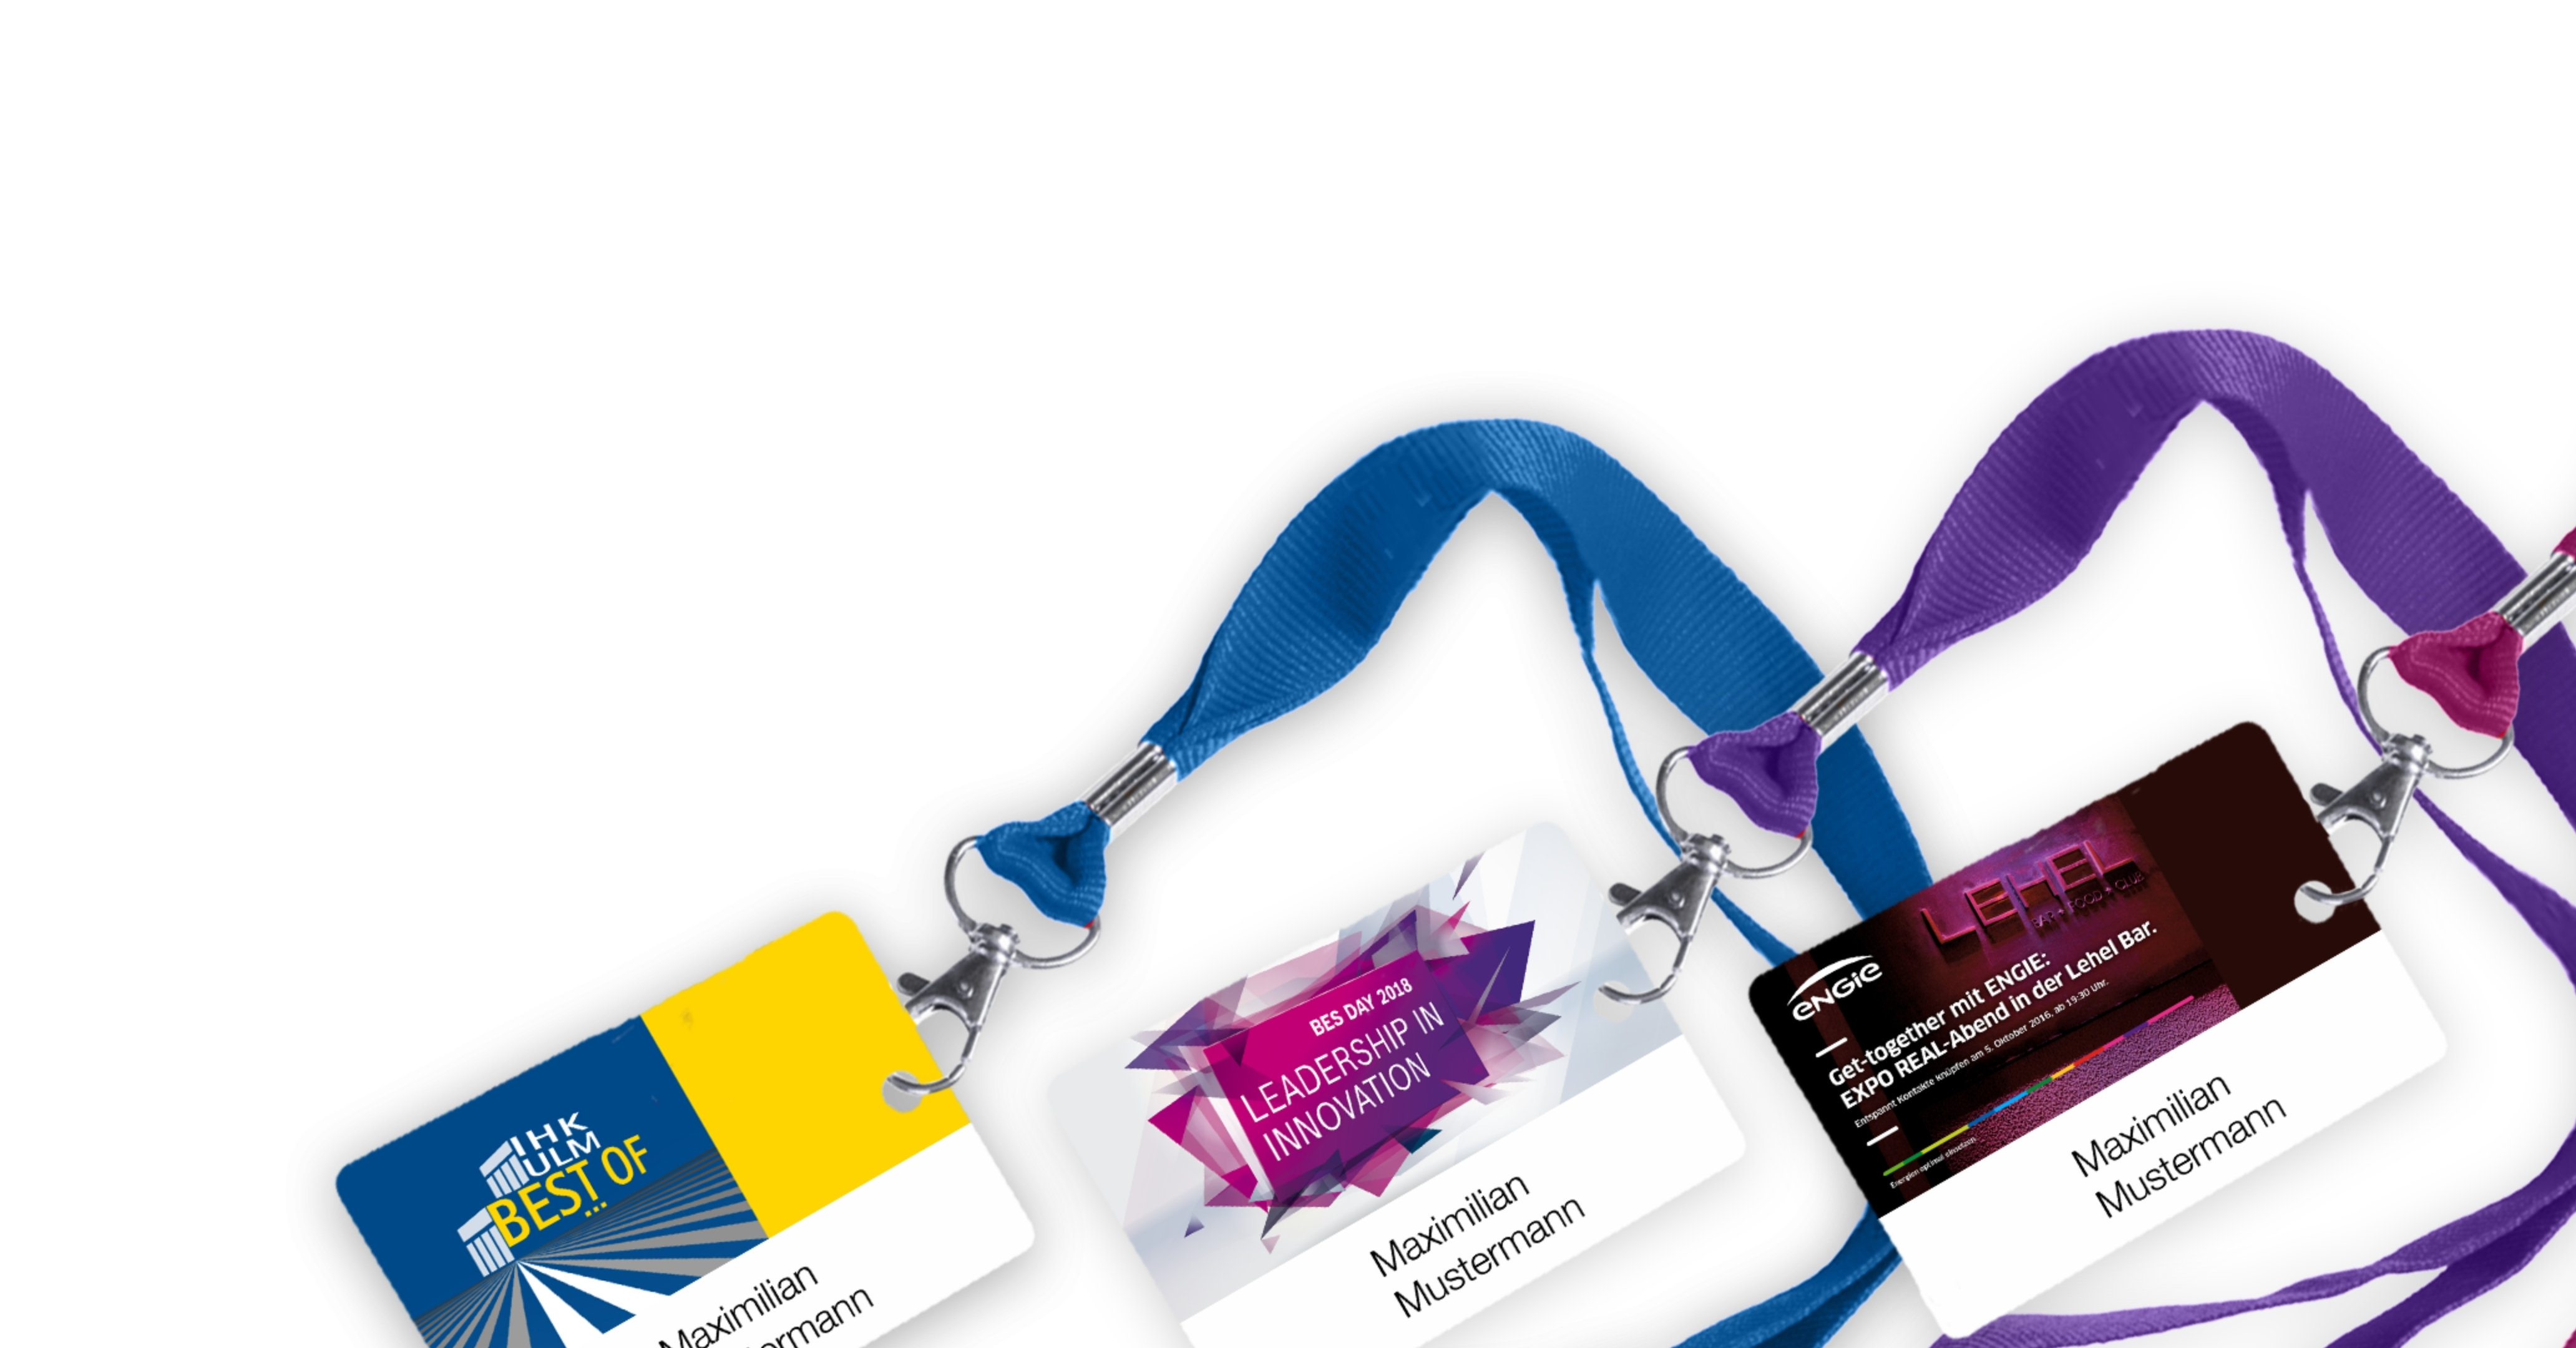 Name Badges and Lanyards, how to print name badges successfully